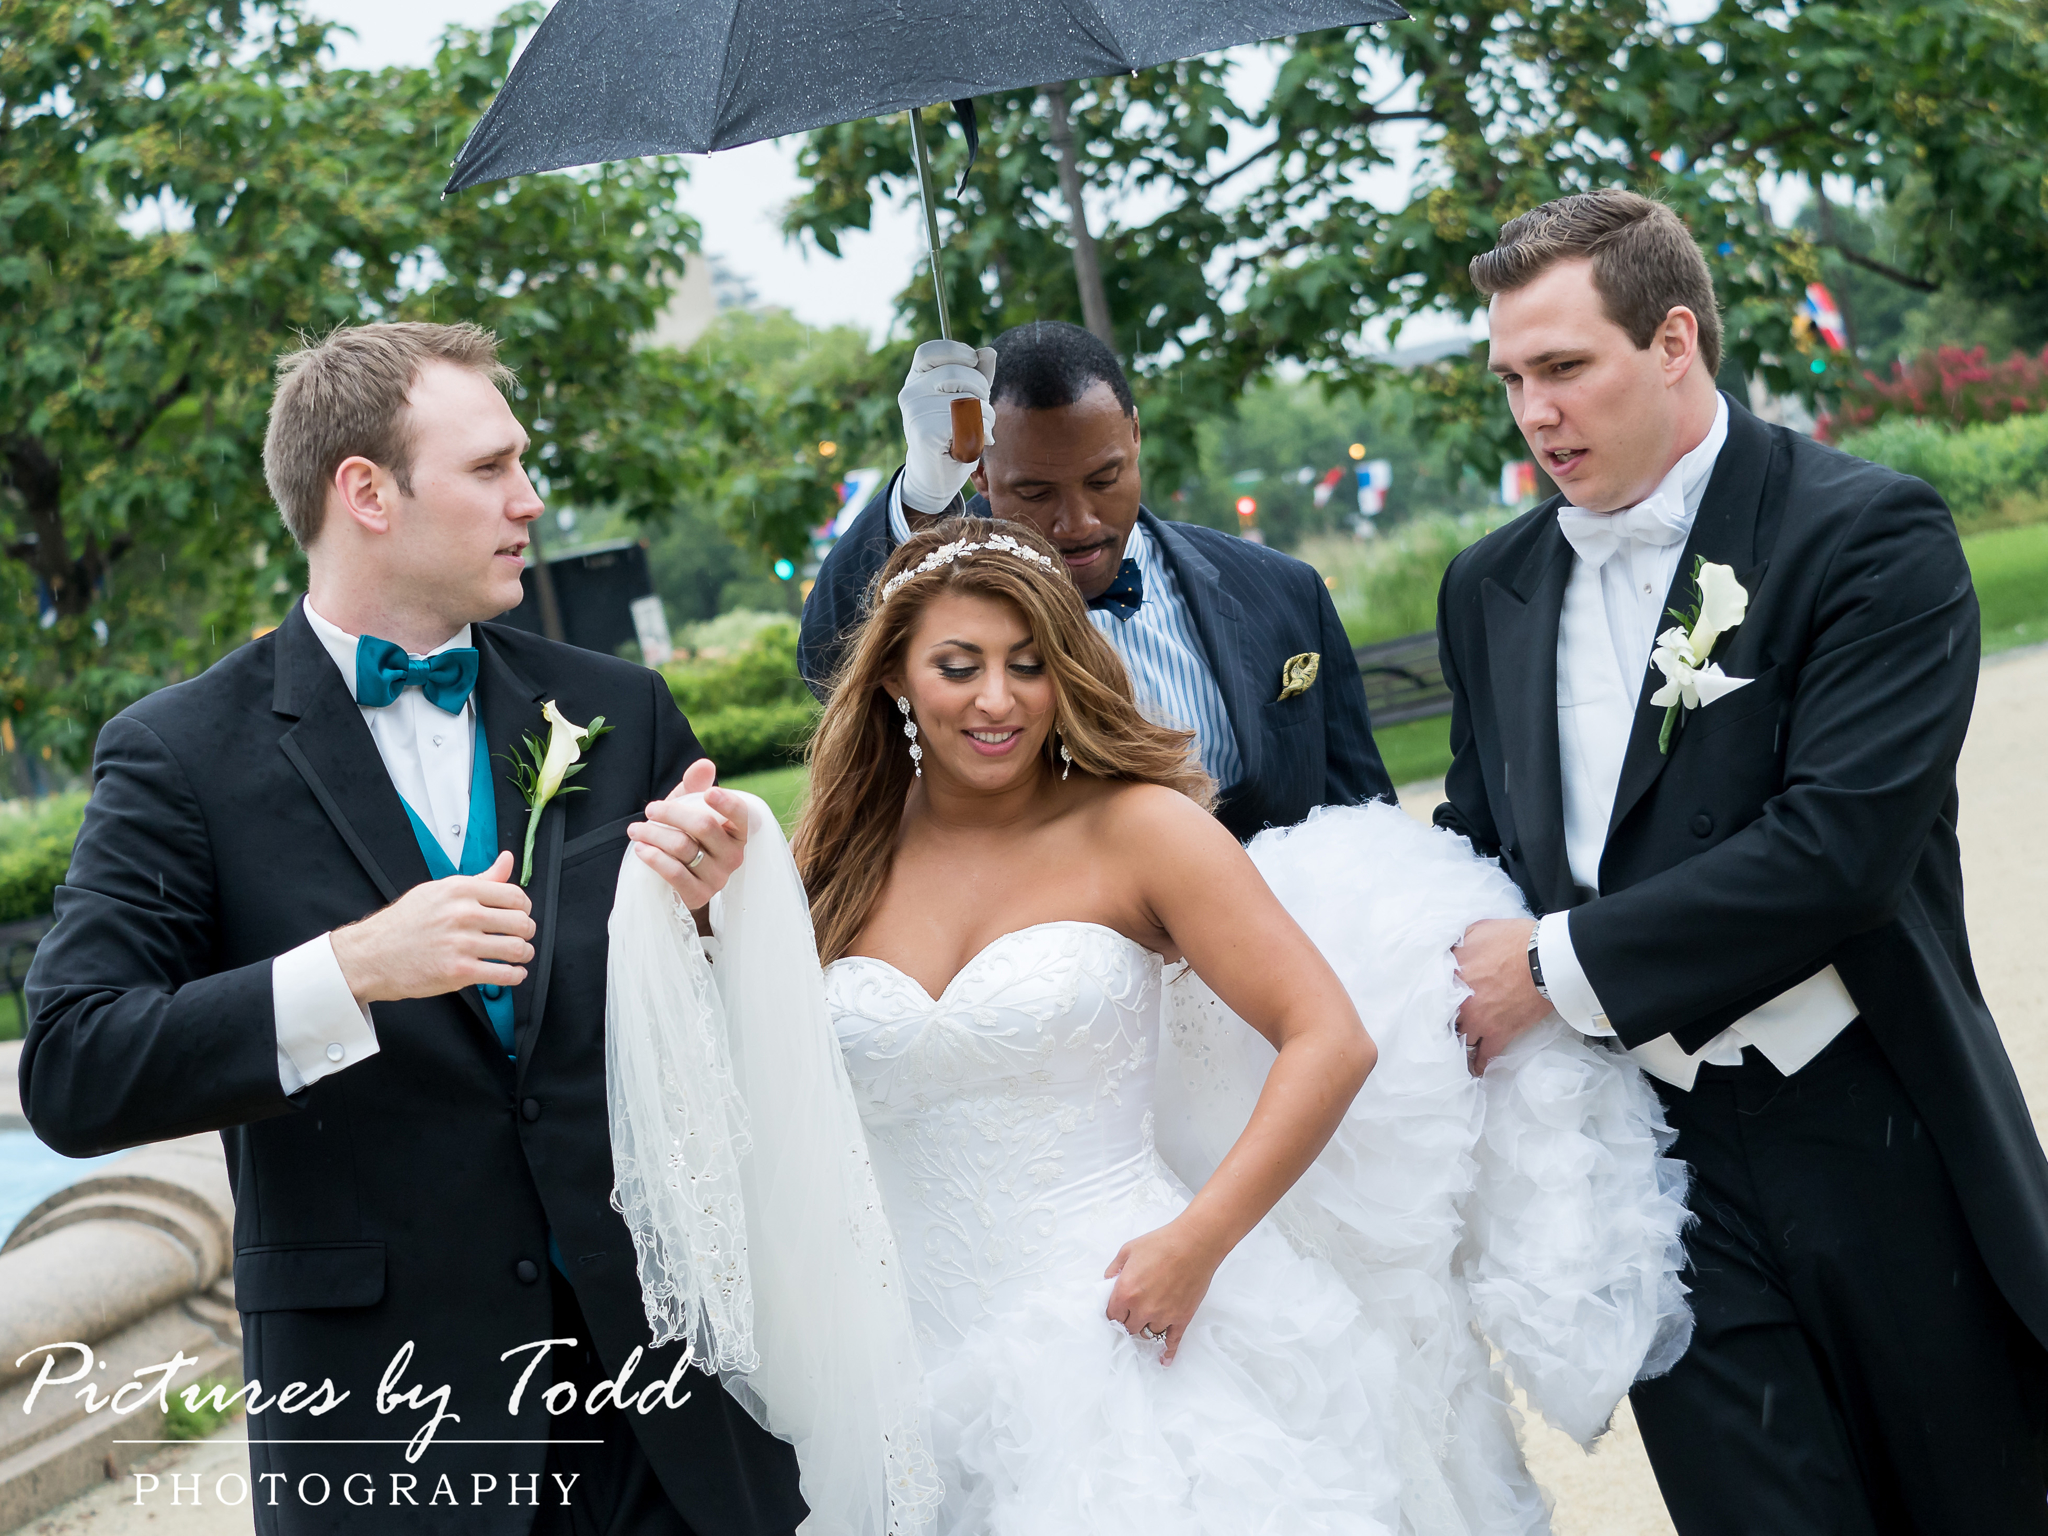 Pictures by todd photography 7 reasons why you want a rainy dont ever be disappointed if it rains check out some of our favorite rainy wedding photos youll be praying for rain on your wedding day junglespirit Choice Image